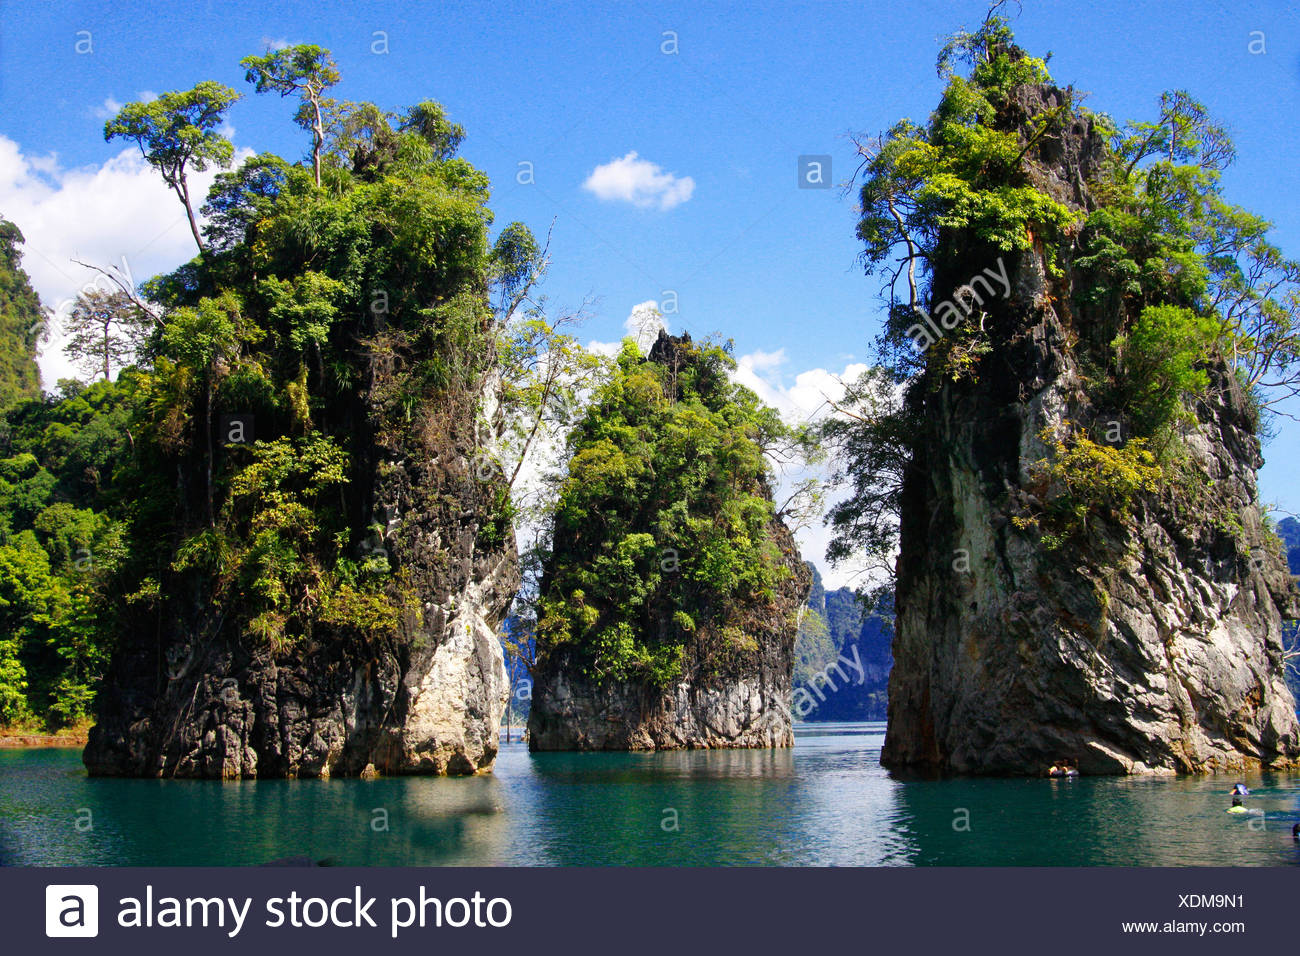 Chiao Lan reservoir and limestone formations, Thailand, Khao Sok National Park, Surat Thani - Stock Image